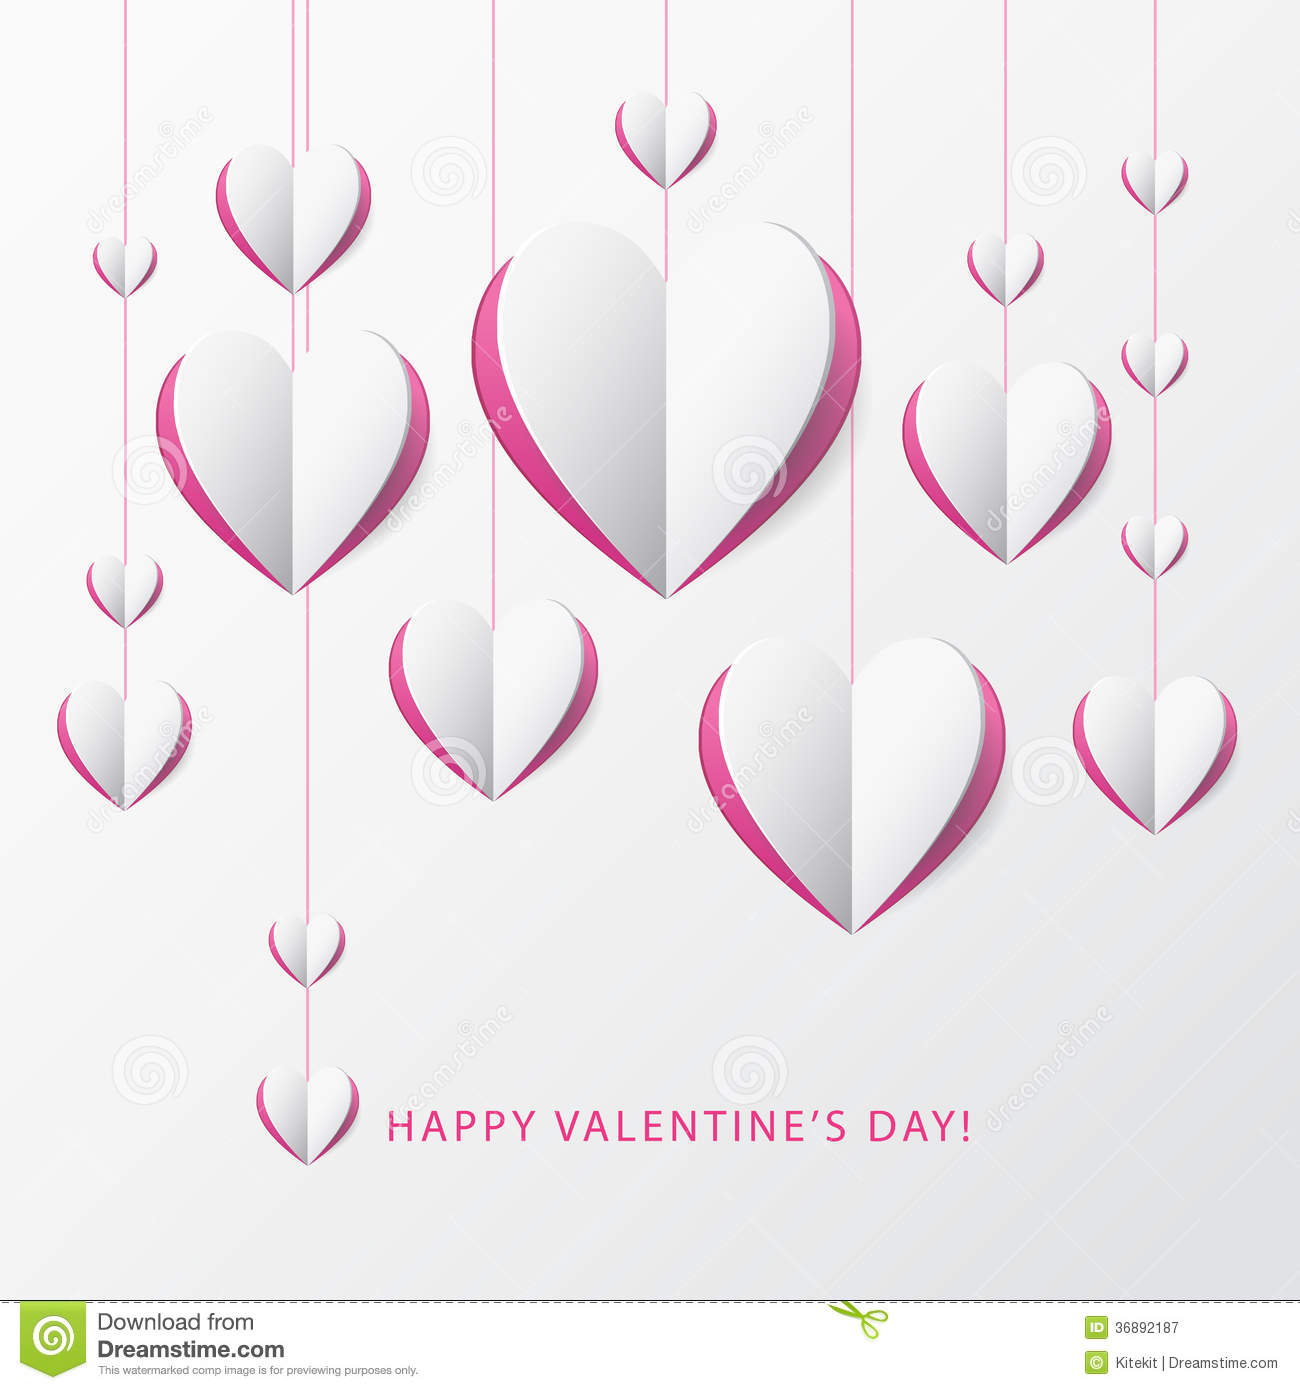 Valentine's Day Greeting Card With Paper Heart. Template ...